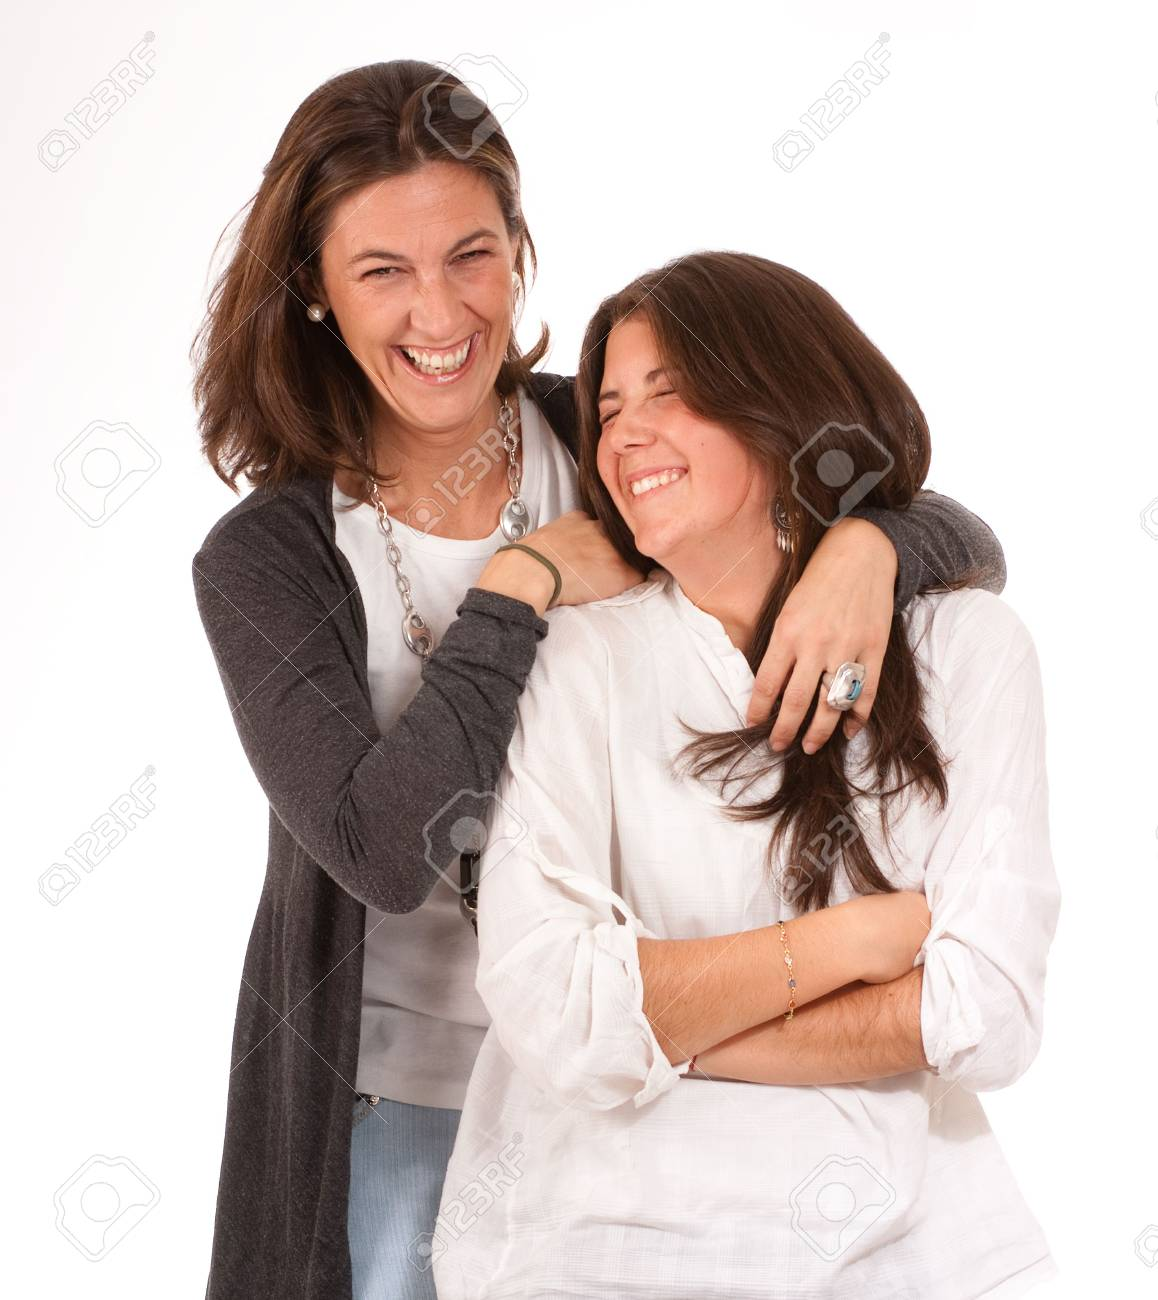 Isolated image of a mother and daughter in laughing together Stock Photo - 6227245